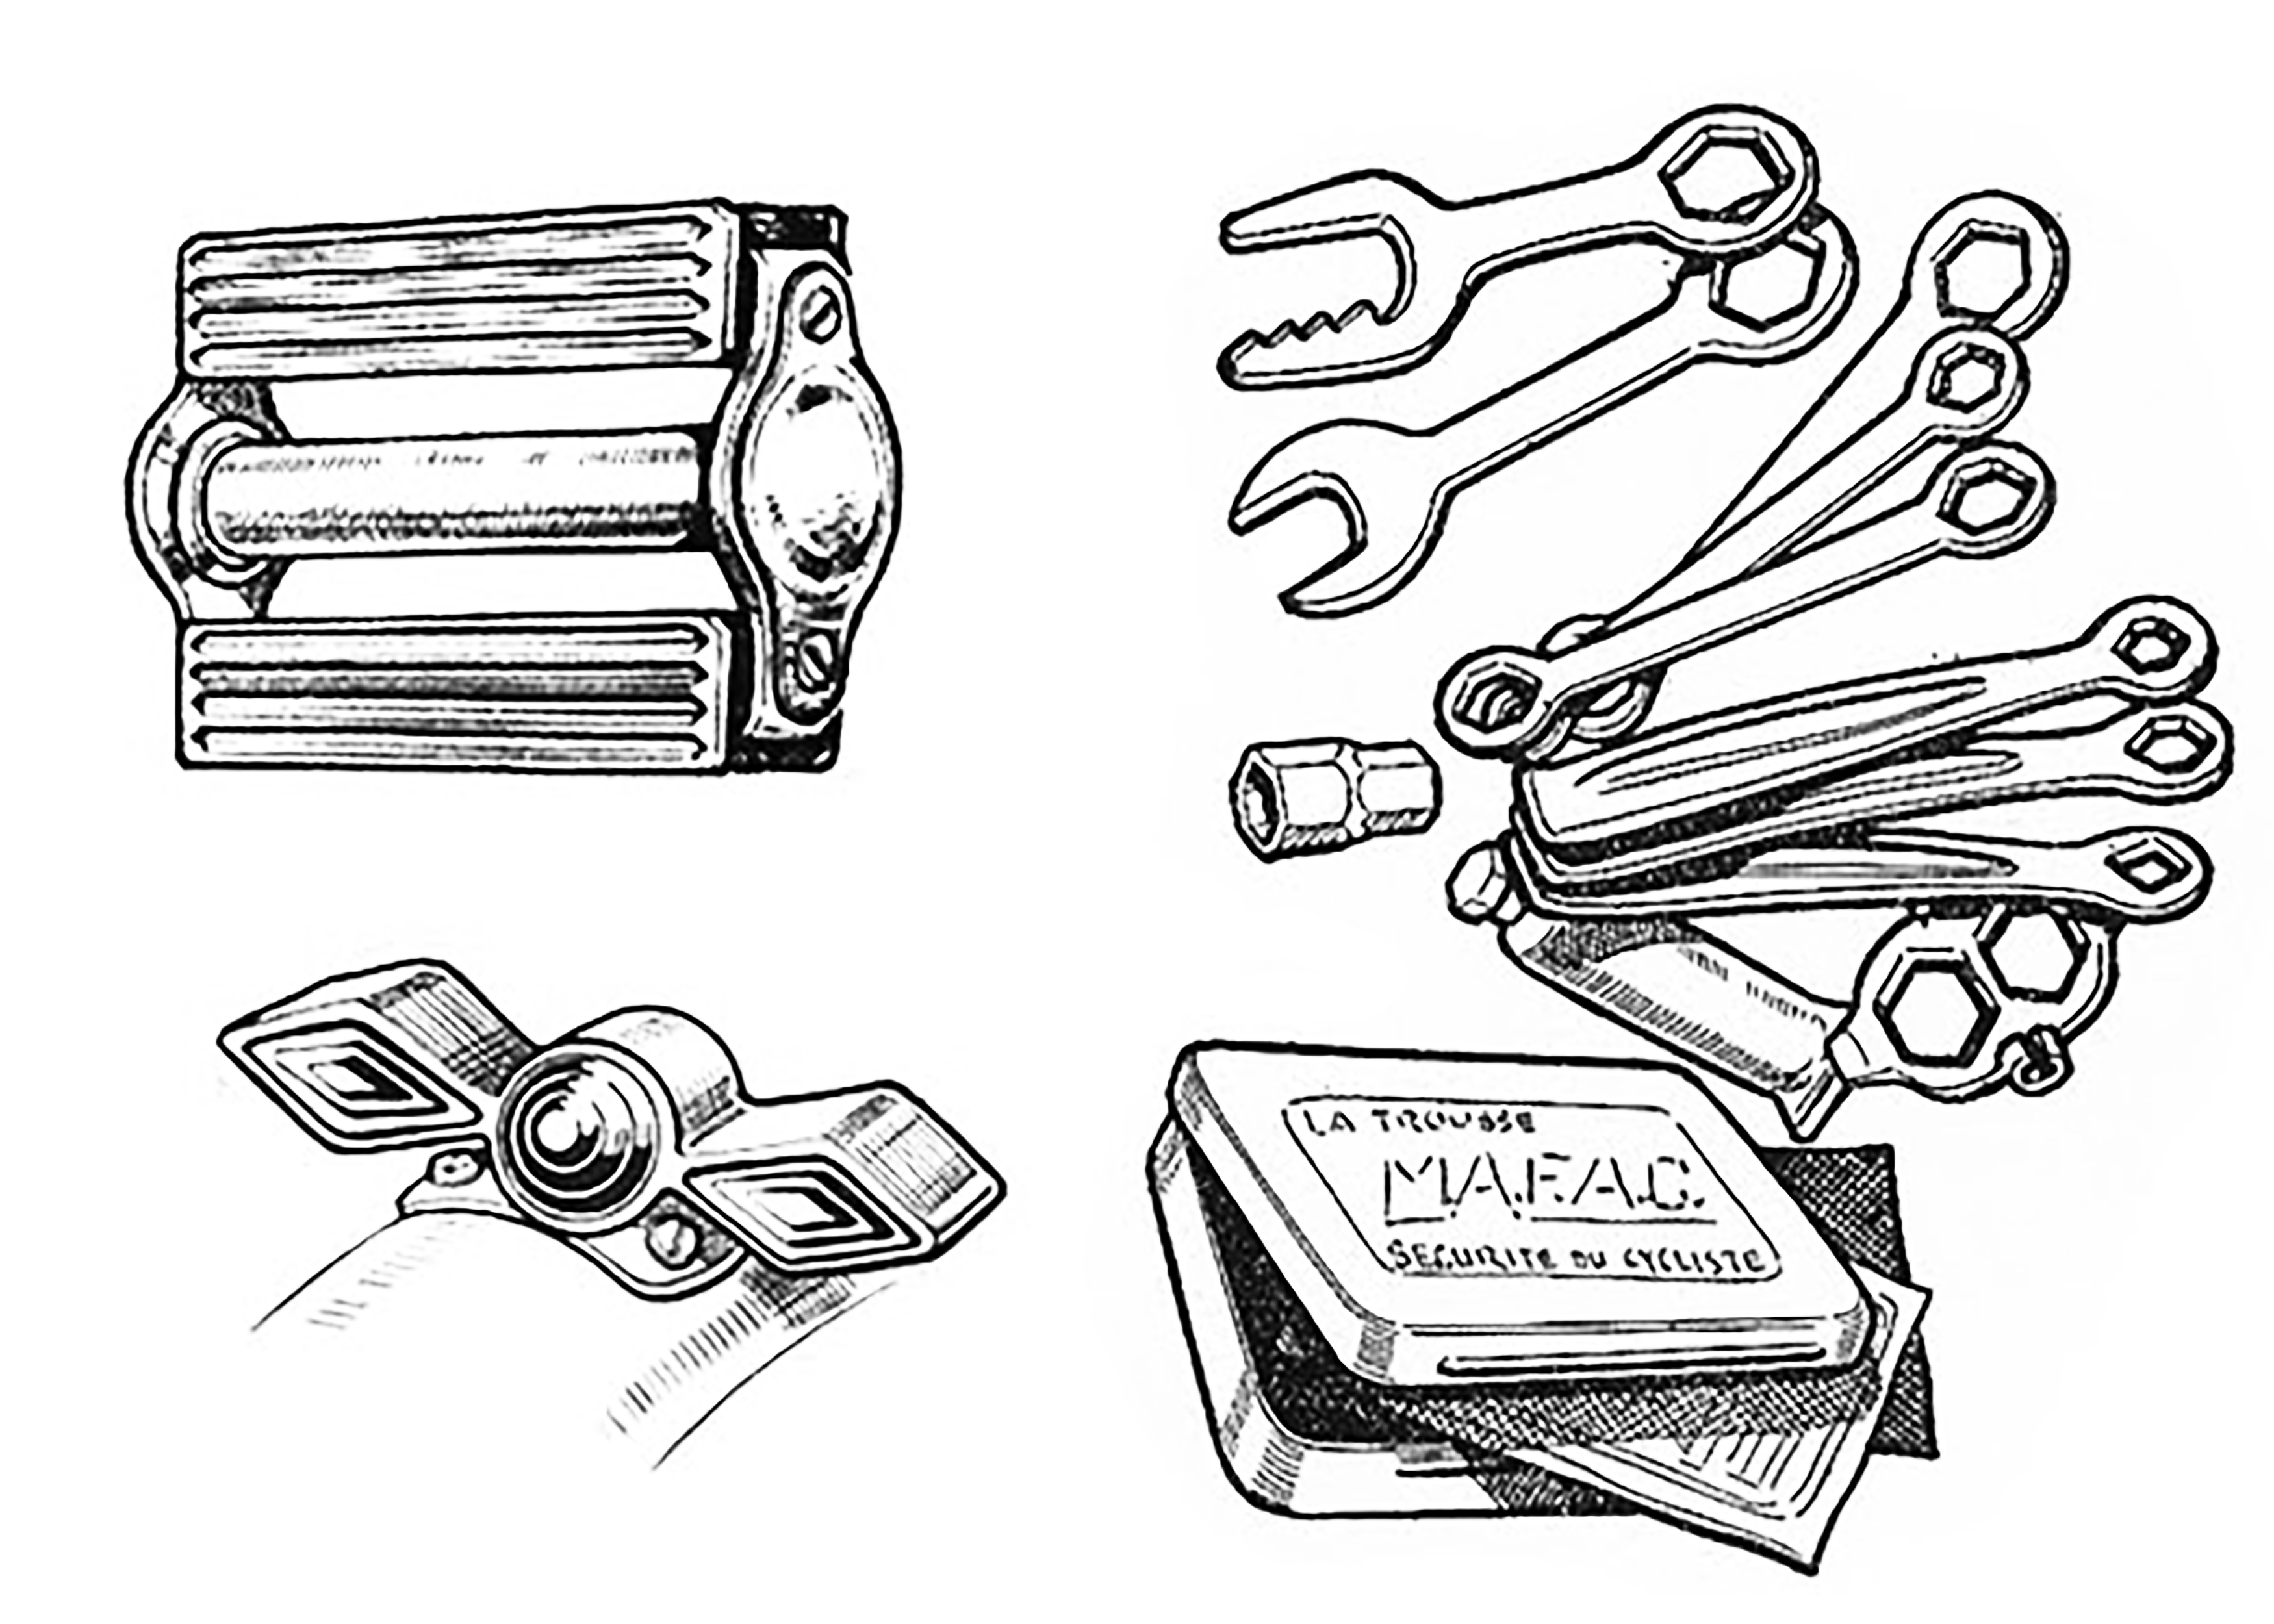 Daniel Rebour Misc. Bicycle Parts and Tools